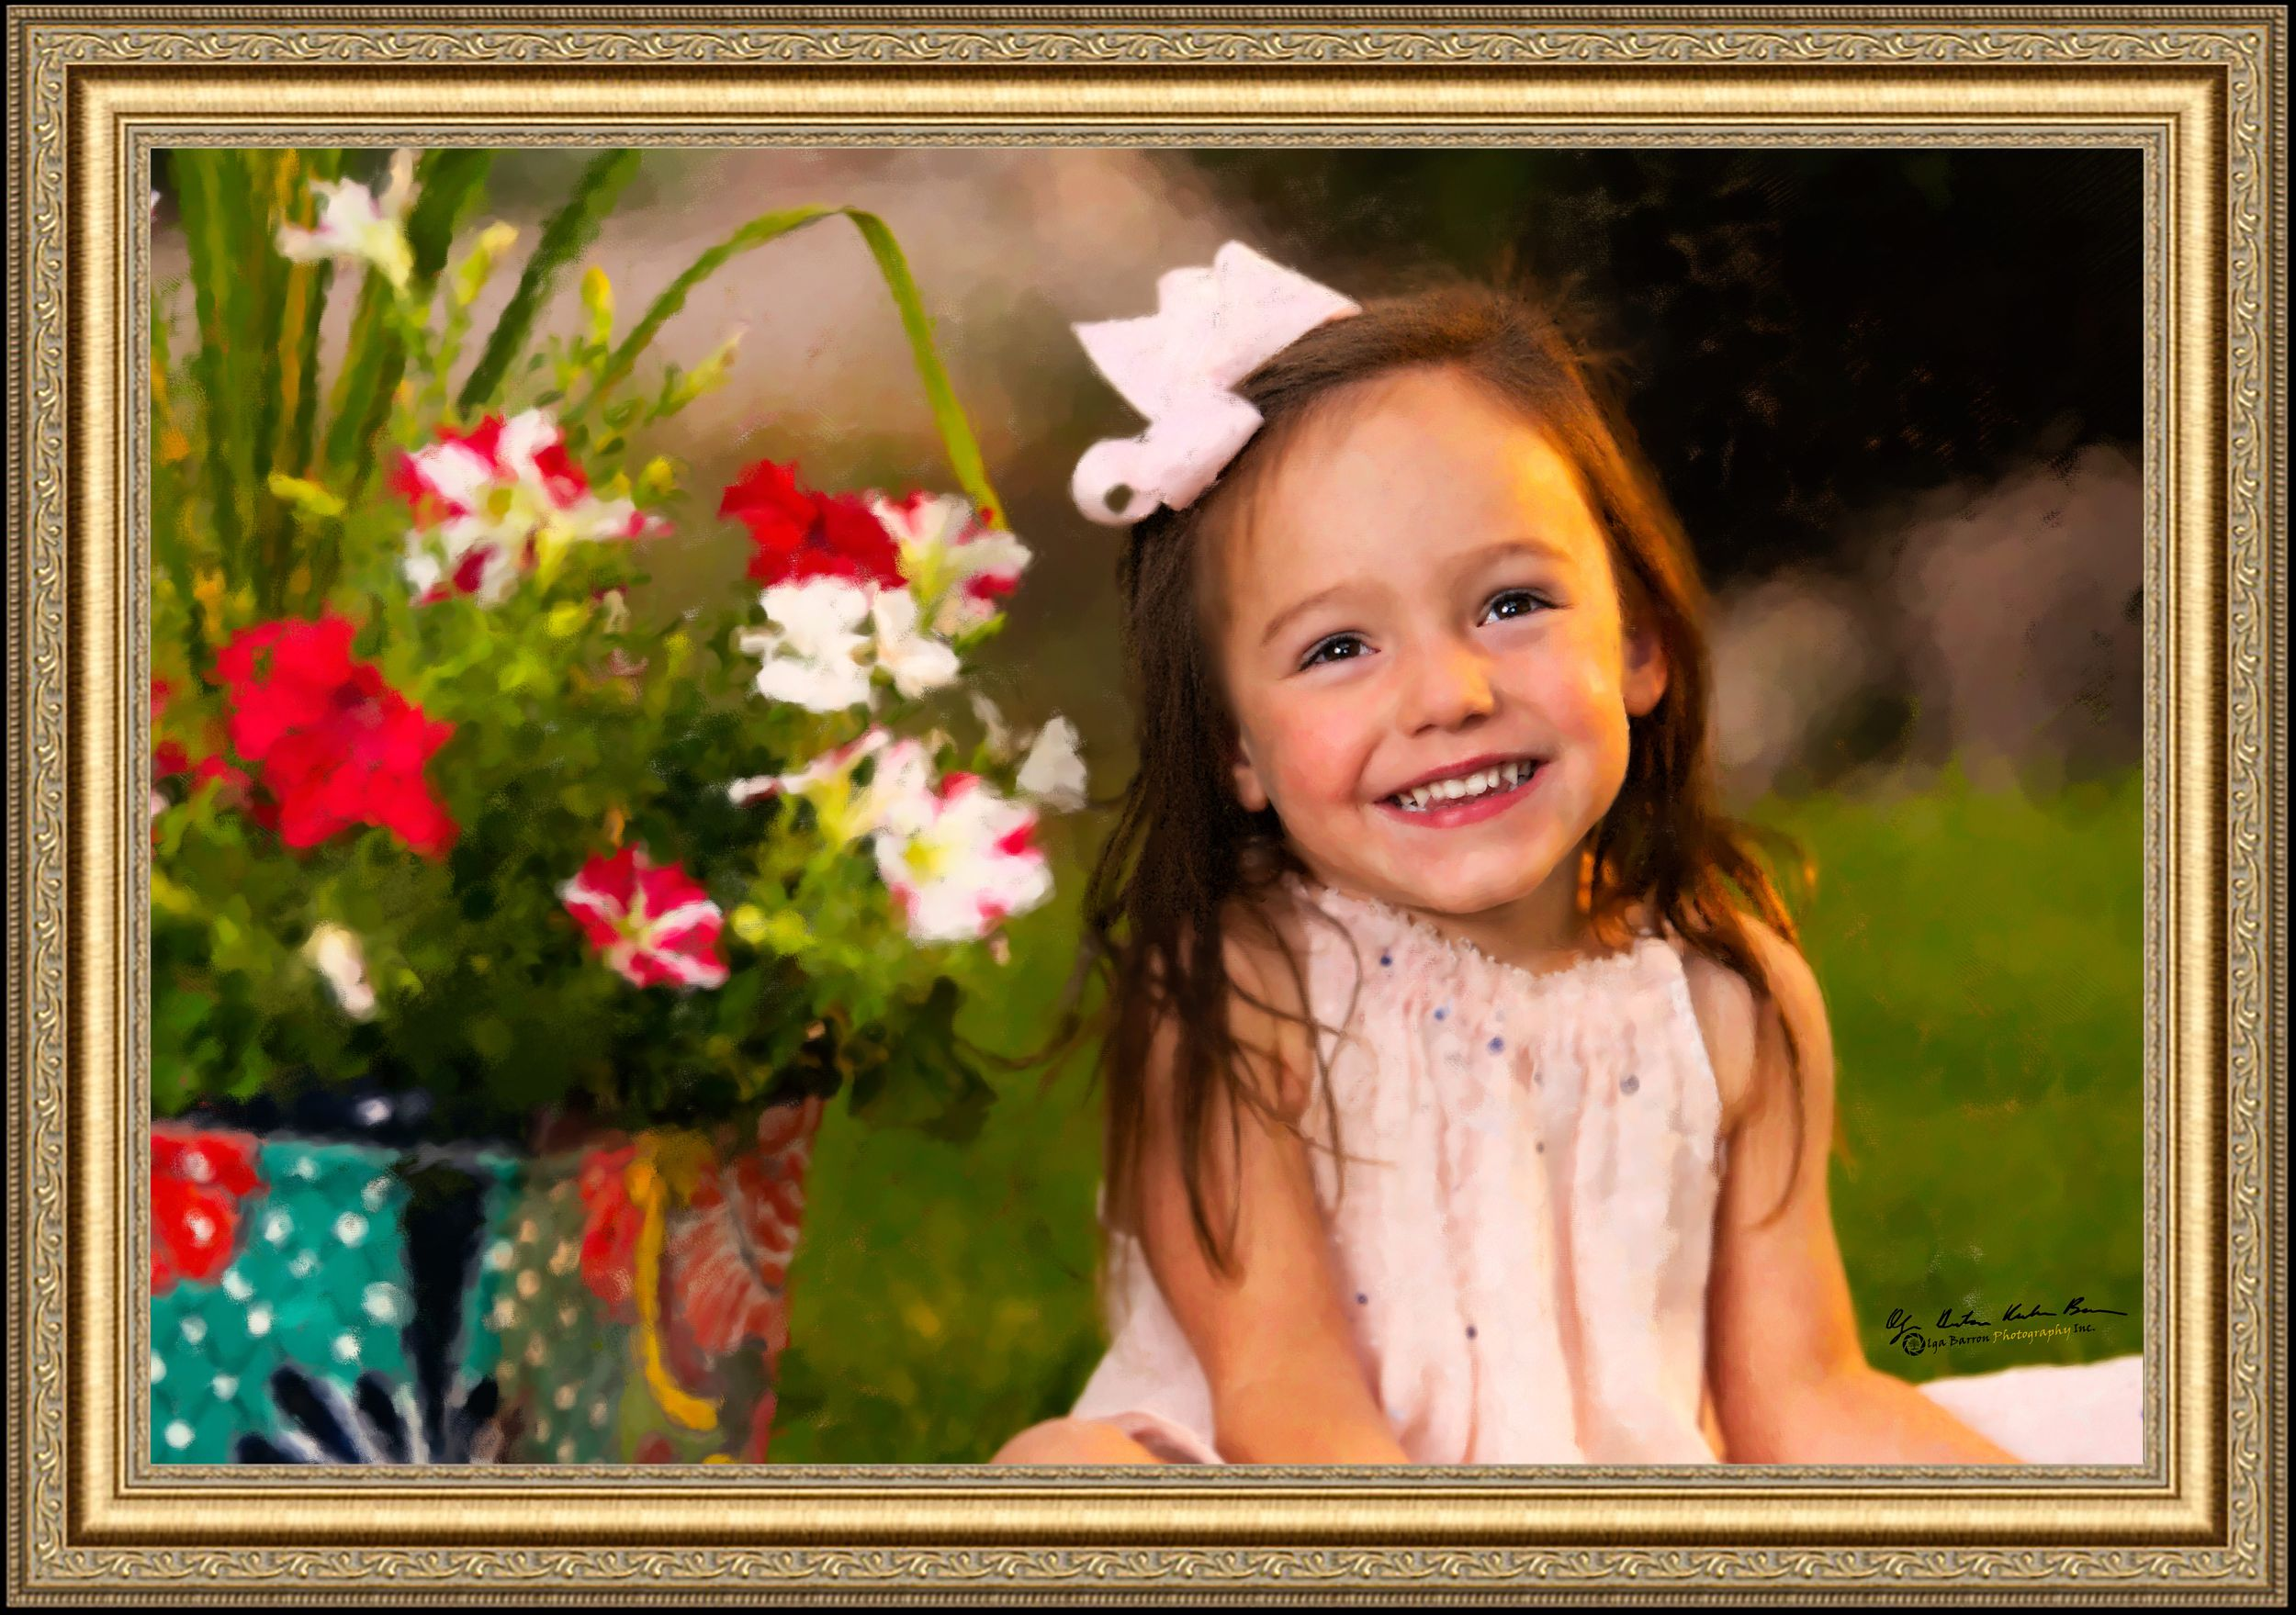 Painterly framed portrait of a little girl with flowers sitting on a lawn